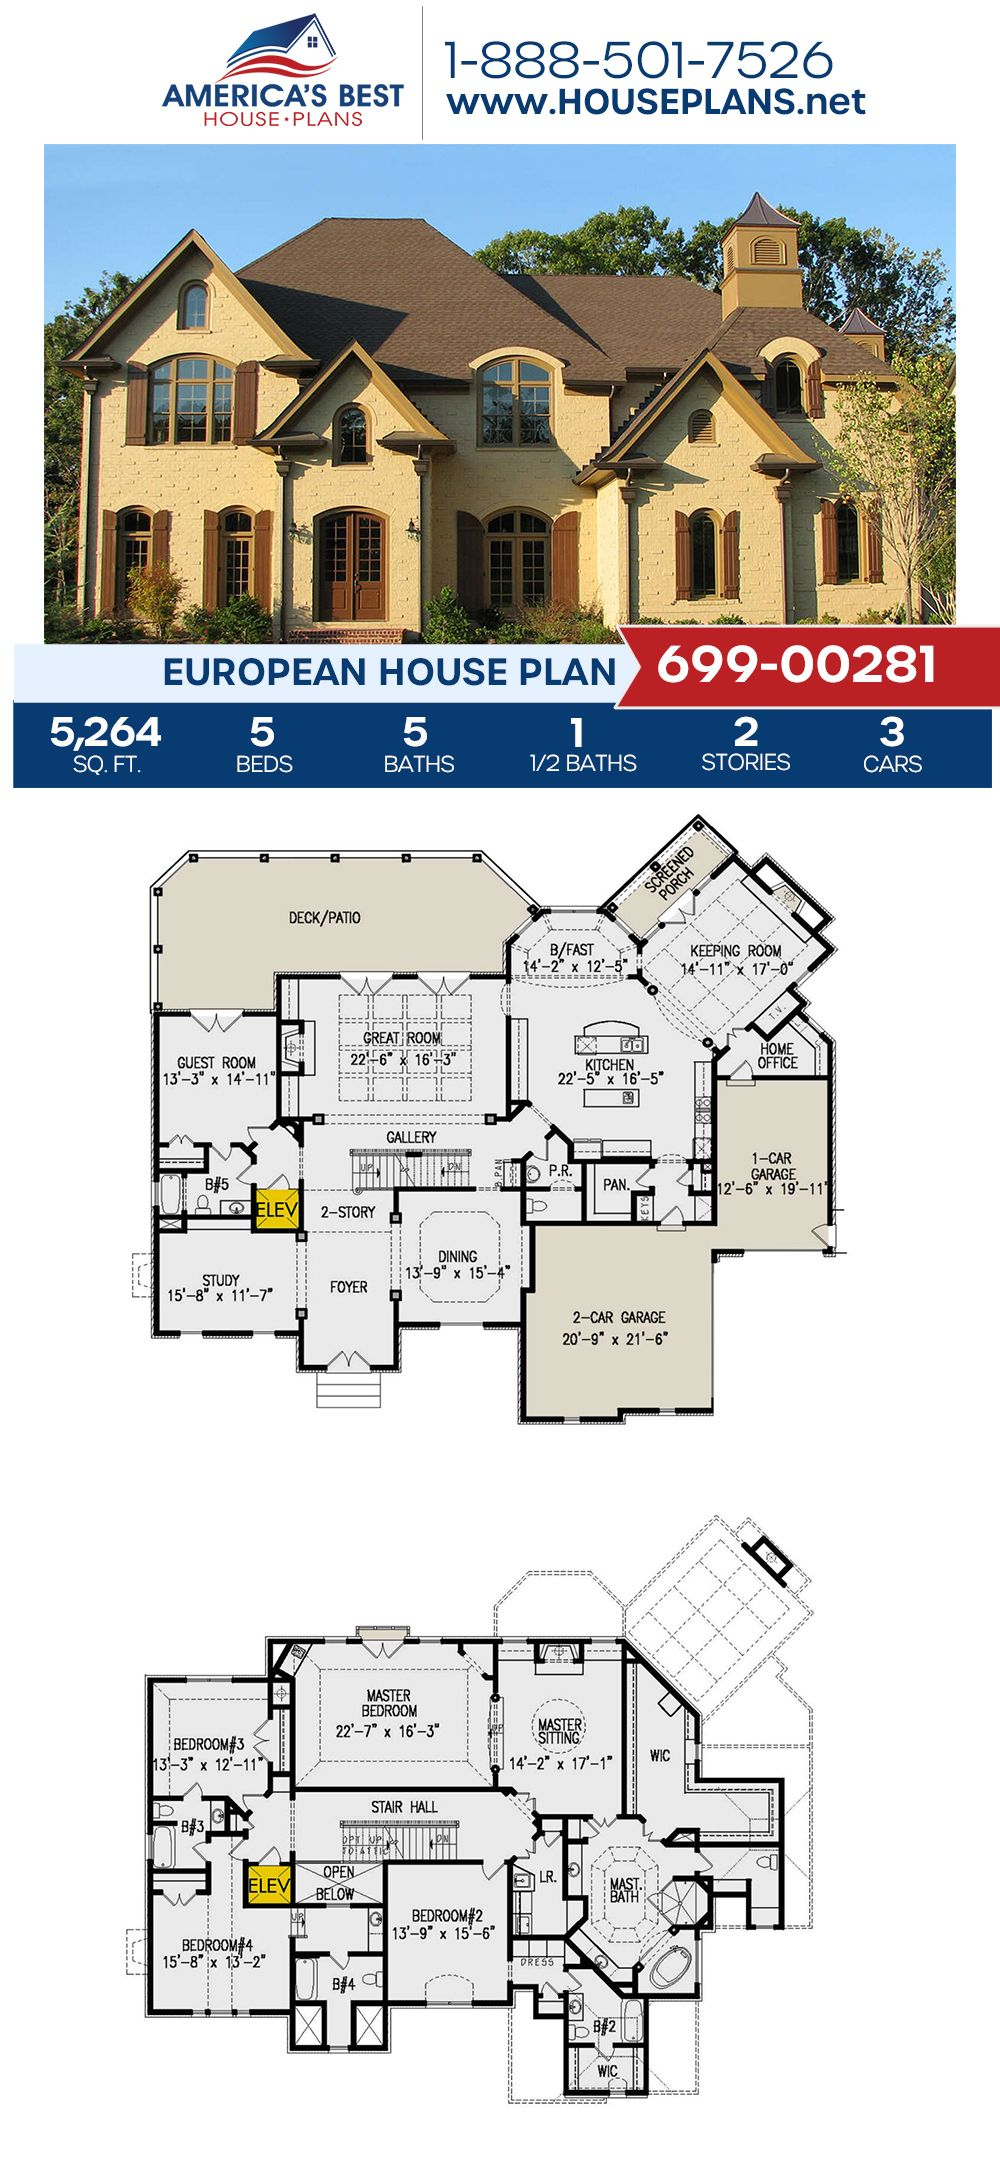 House Plan 699 00281 European Plan 5 264 Square Feet 5 Bedrooms 5 5 Bathrooms In 2020 House Plans European Plan European House Plans